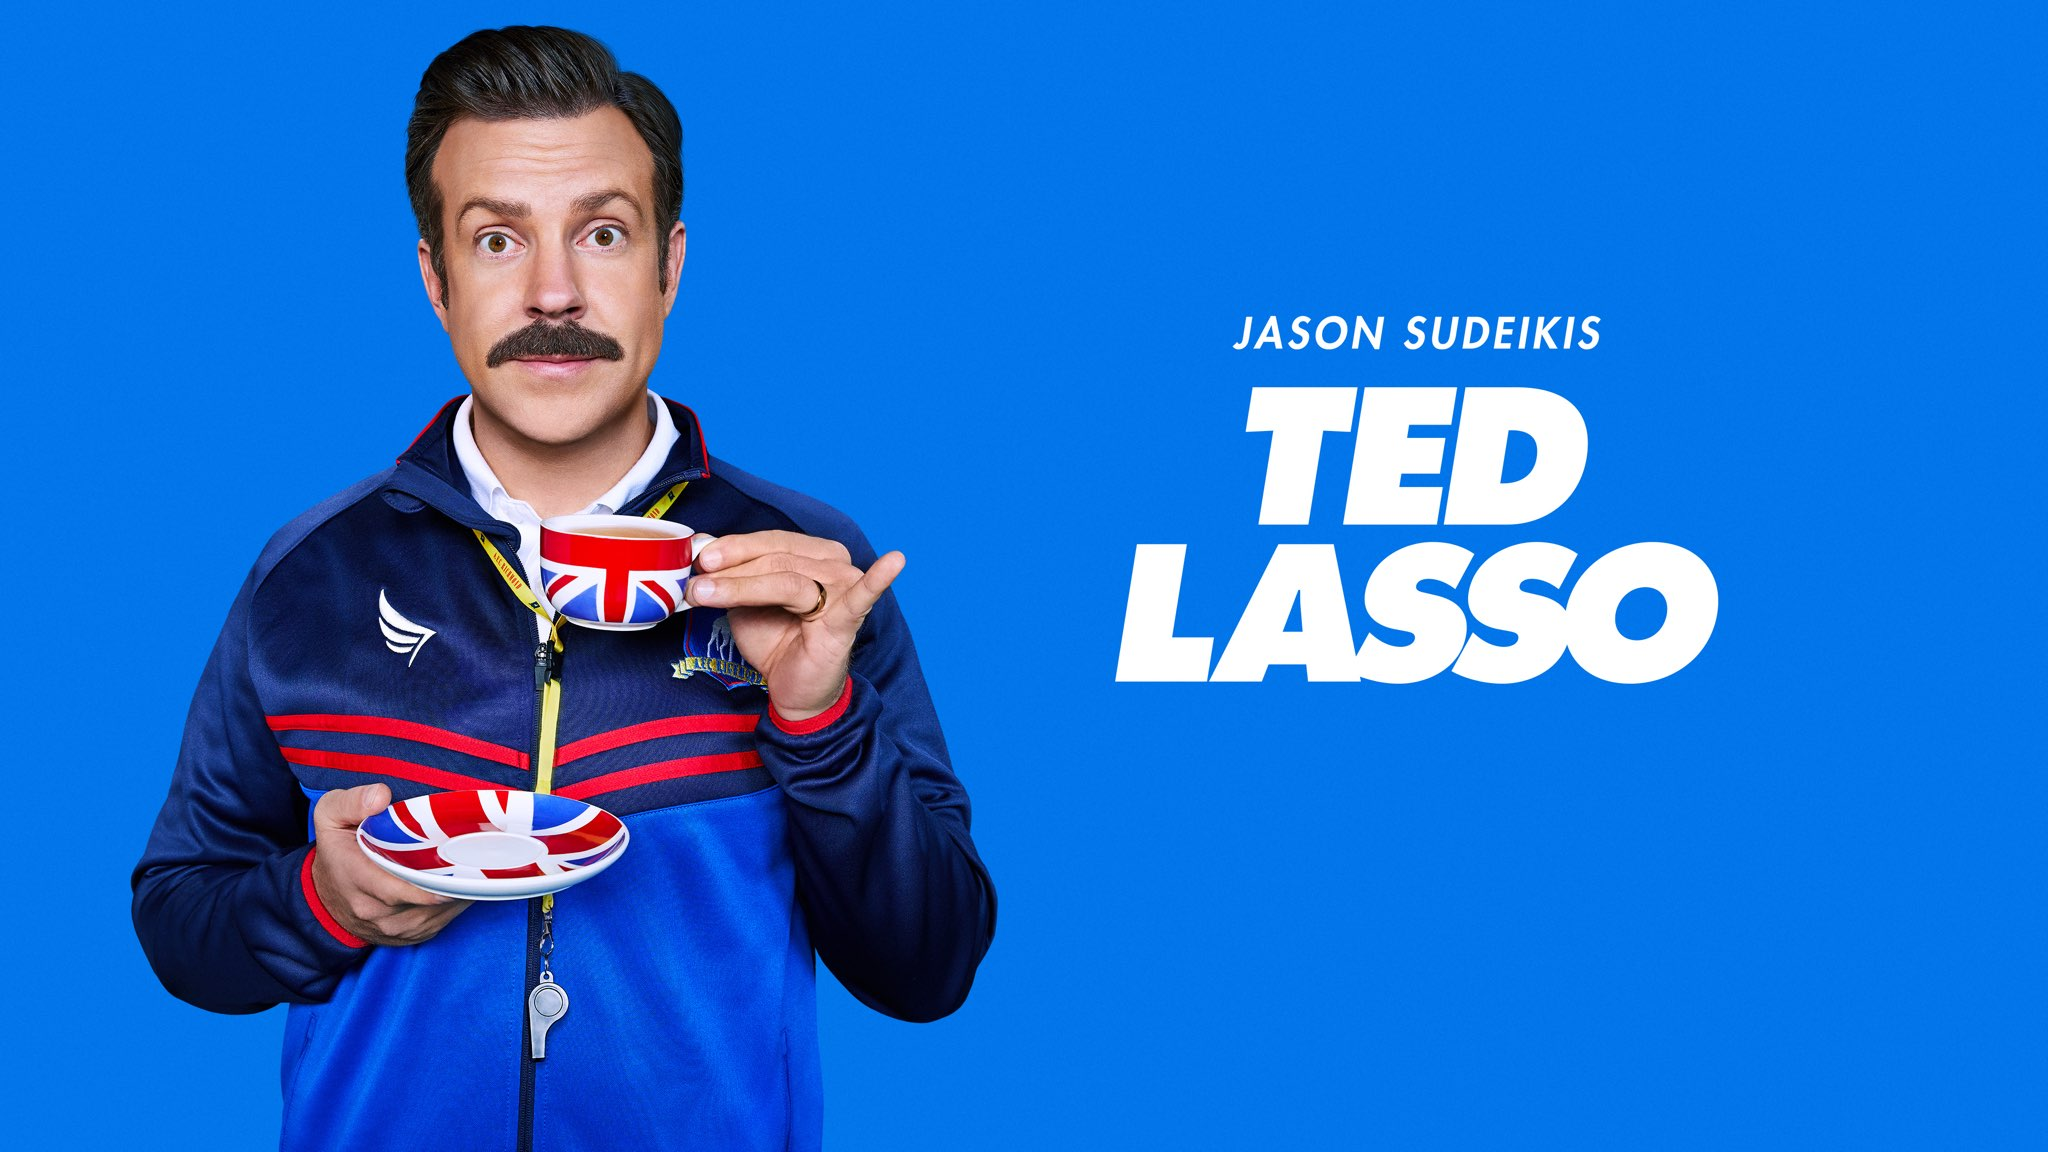 Ted Lasso Art of the Cut podcast